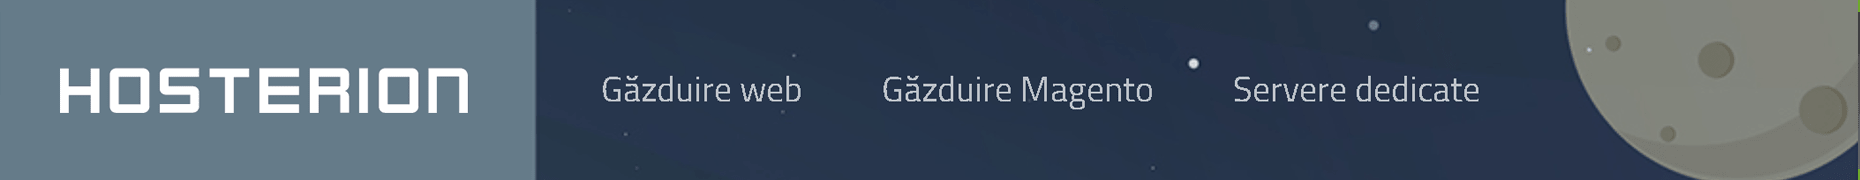 gazduire-ecommerce-hosterion